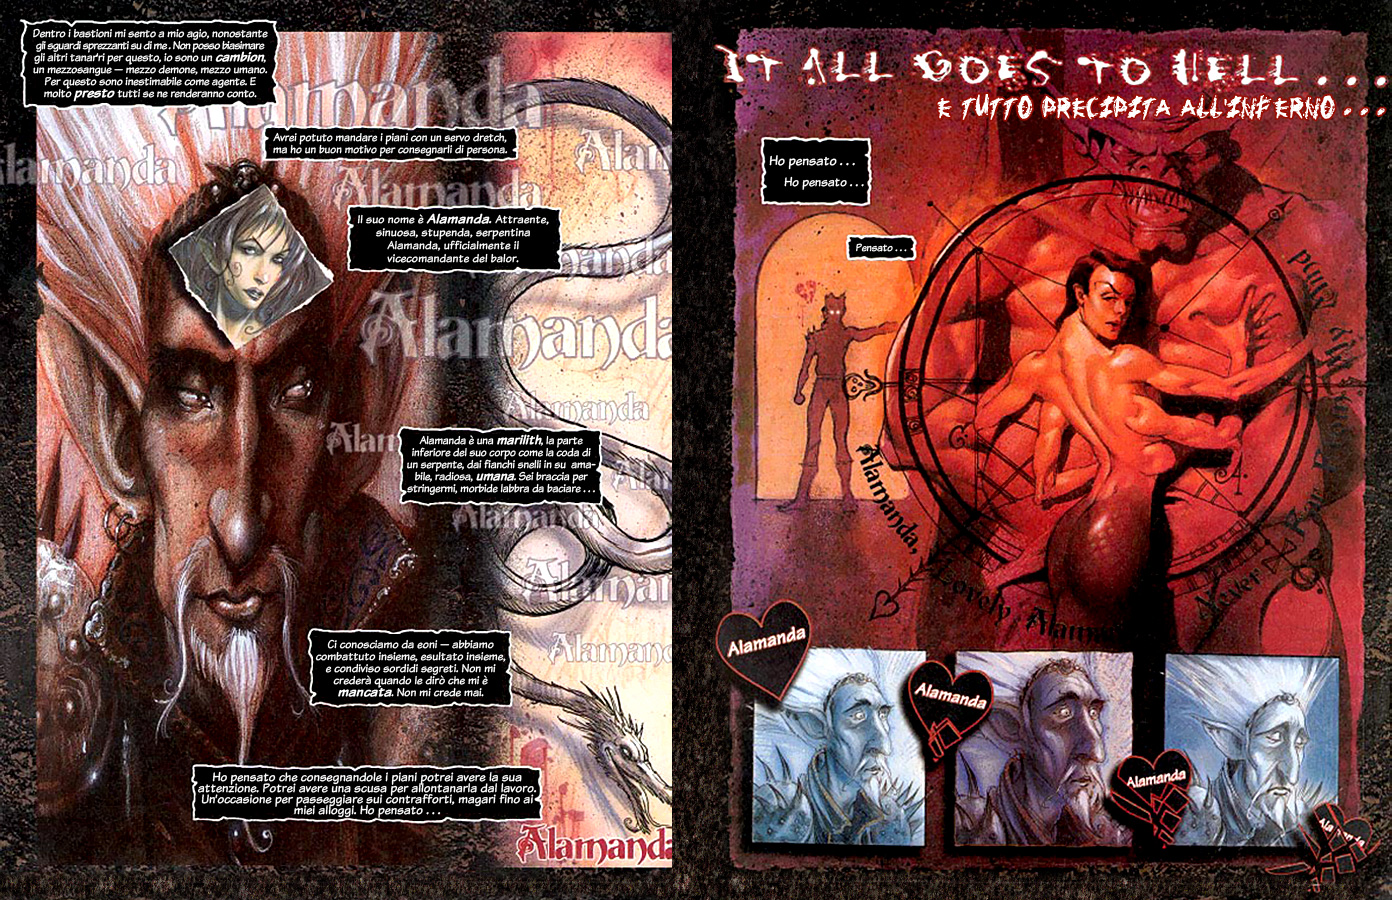 Planescape Hellbound graphic novel the bargain ita italiano by diterlizzi and ruppel, abyss cambion zaxarus balor alamanda marilith